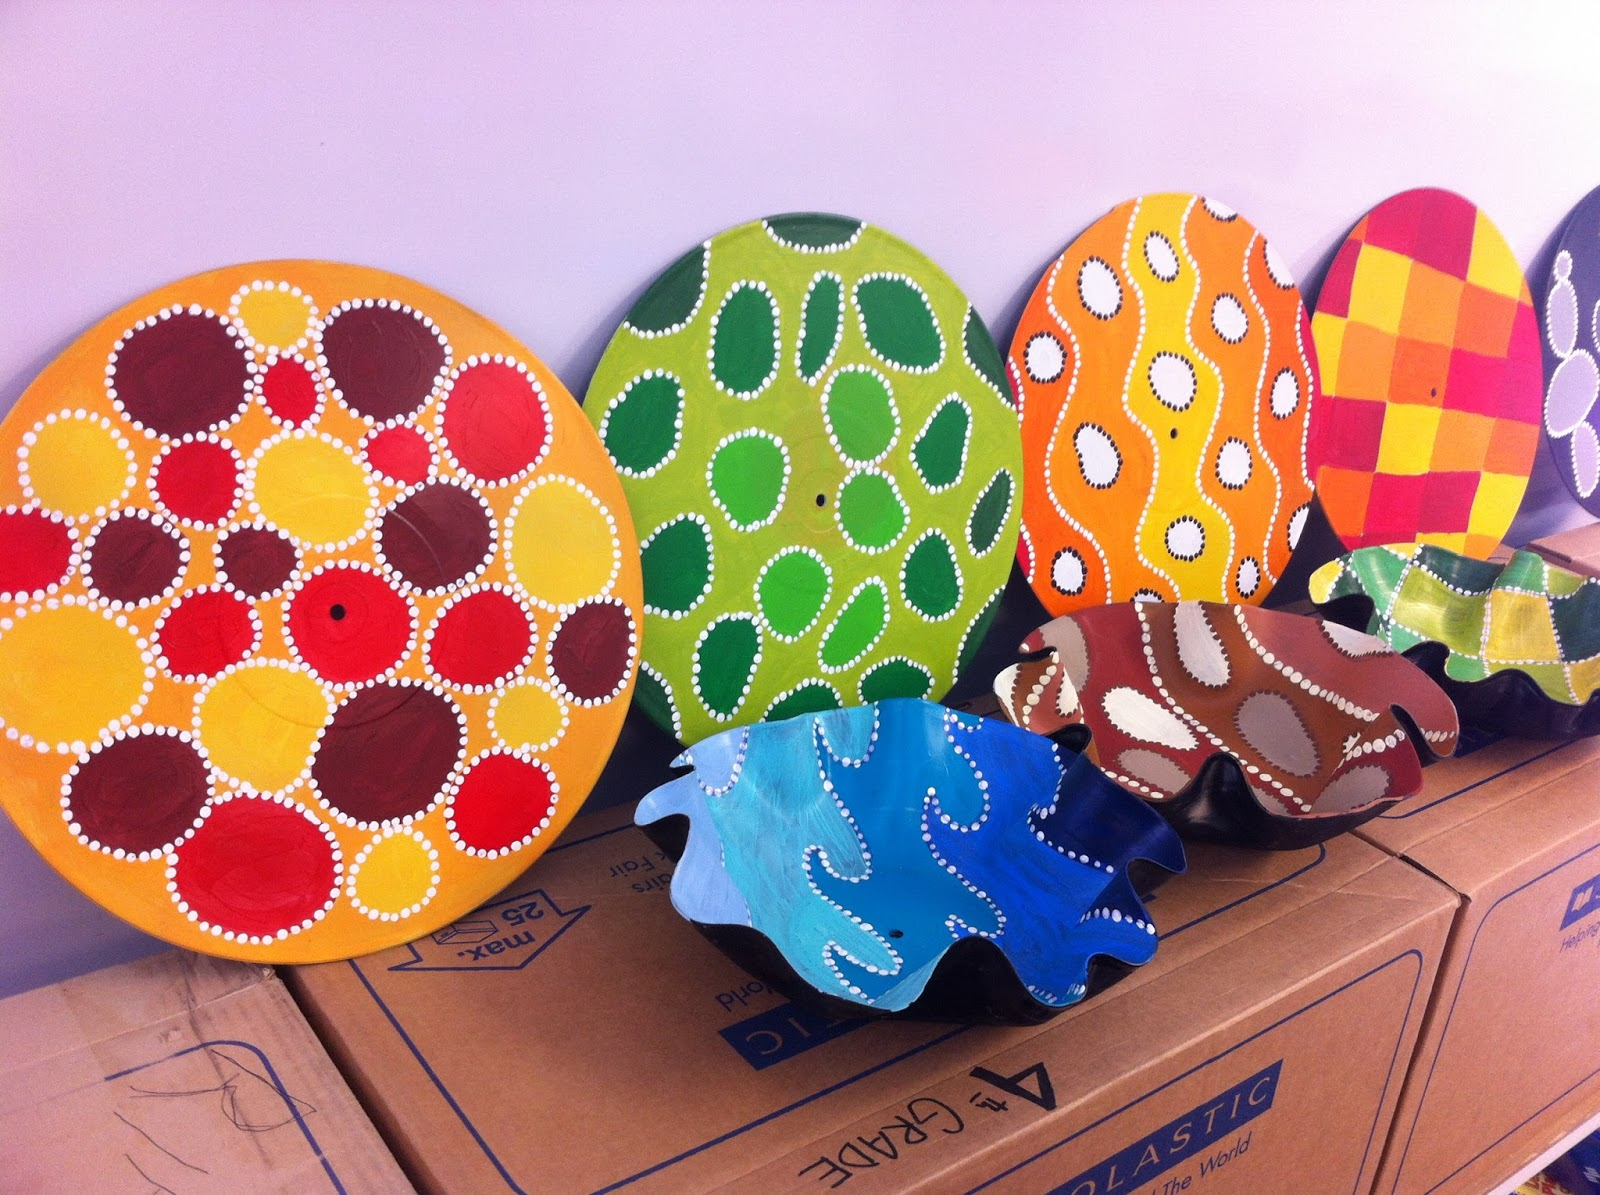 Rethink crafts recycled vinyl record bowls for Crafts with old records